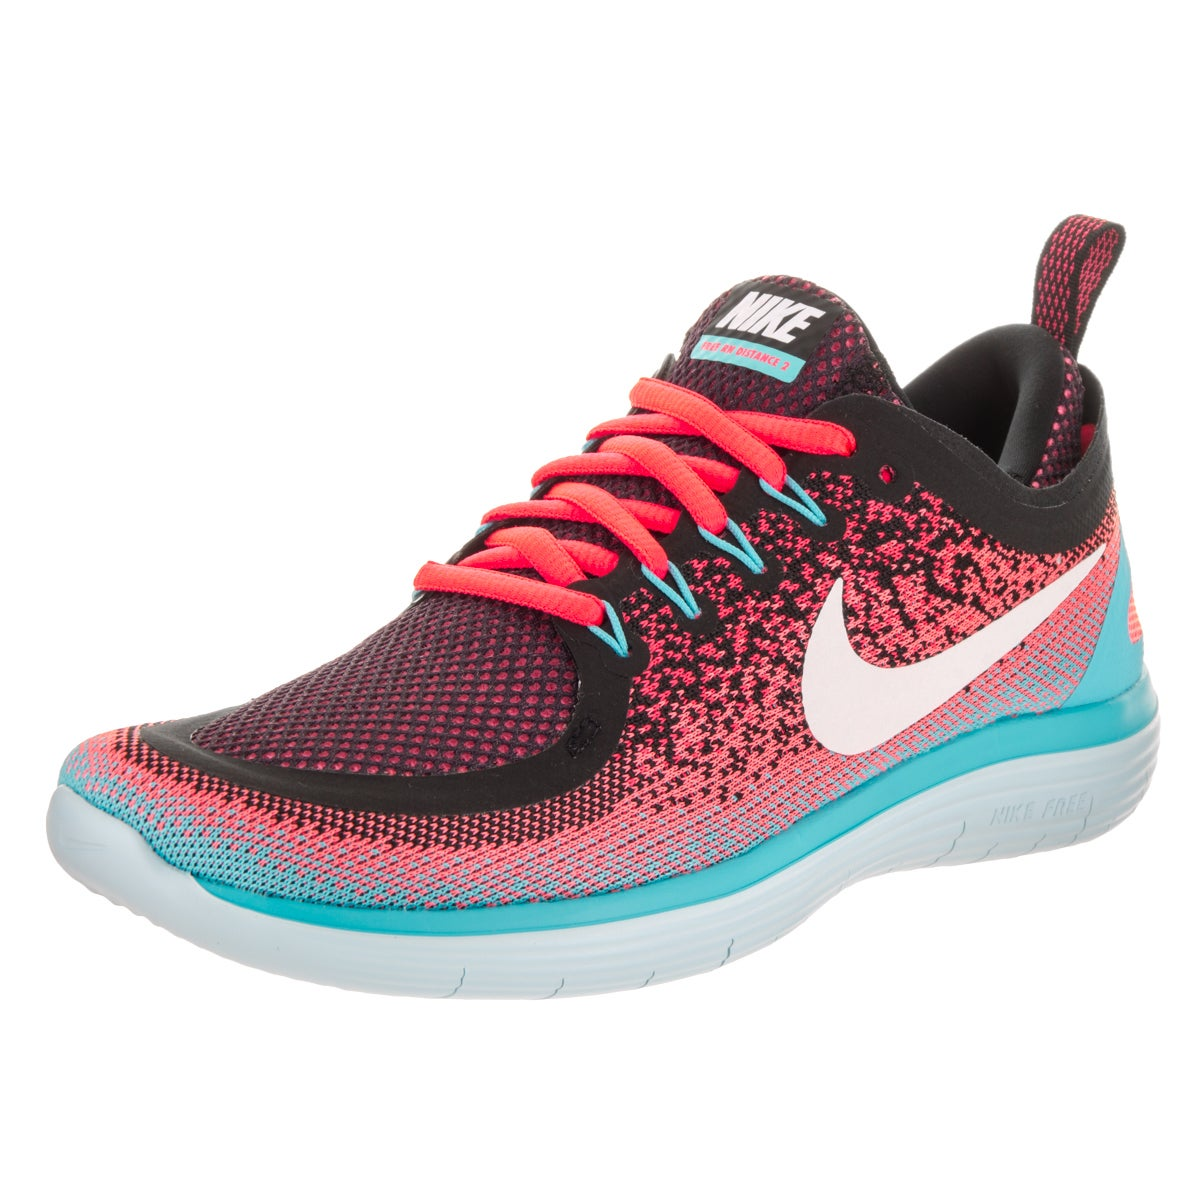 8215a612bb53a Shop Nike Women s Free RN Distance 2 Running Shoes - Free Shipping Today -  Overstock - 14163282